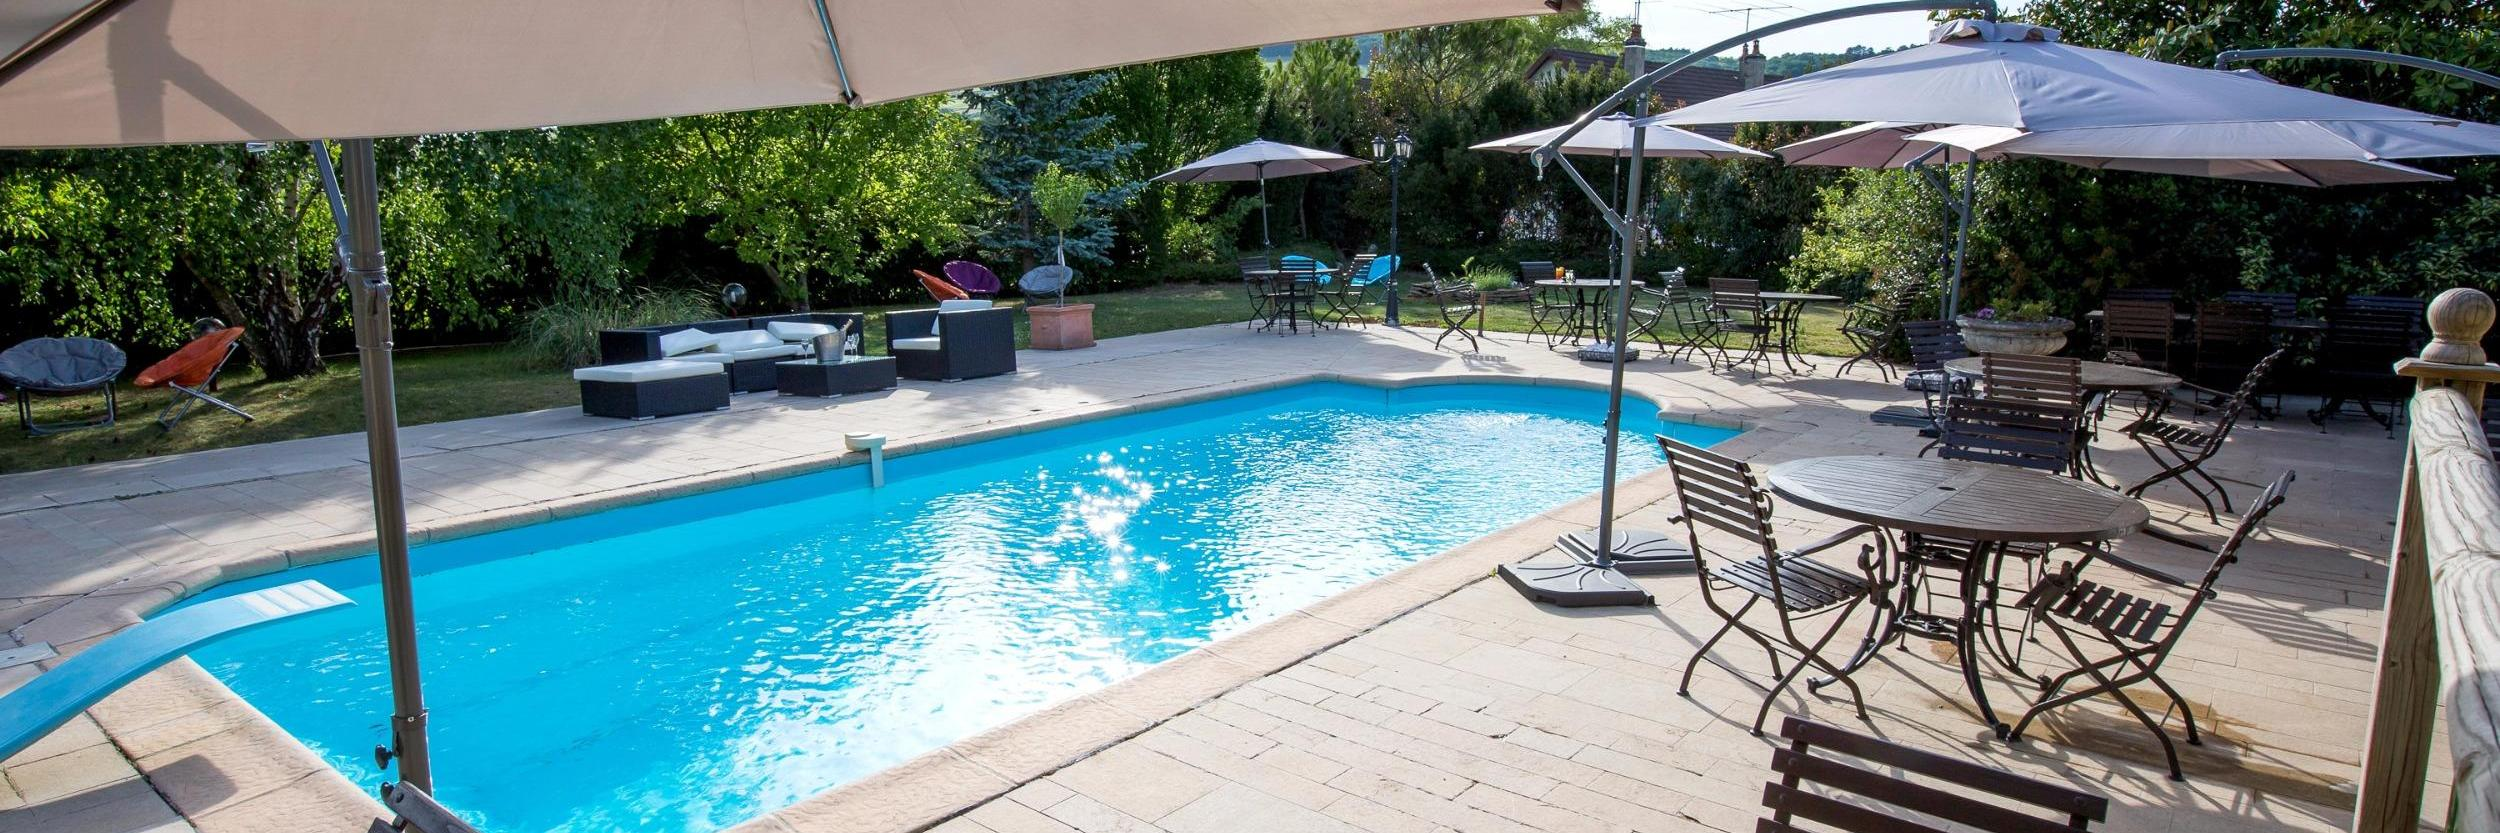 H tel dole dans jura restaurants logis hotels dole for Chavannes piscine